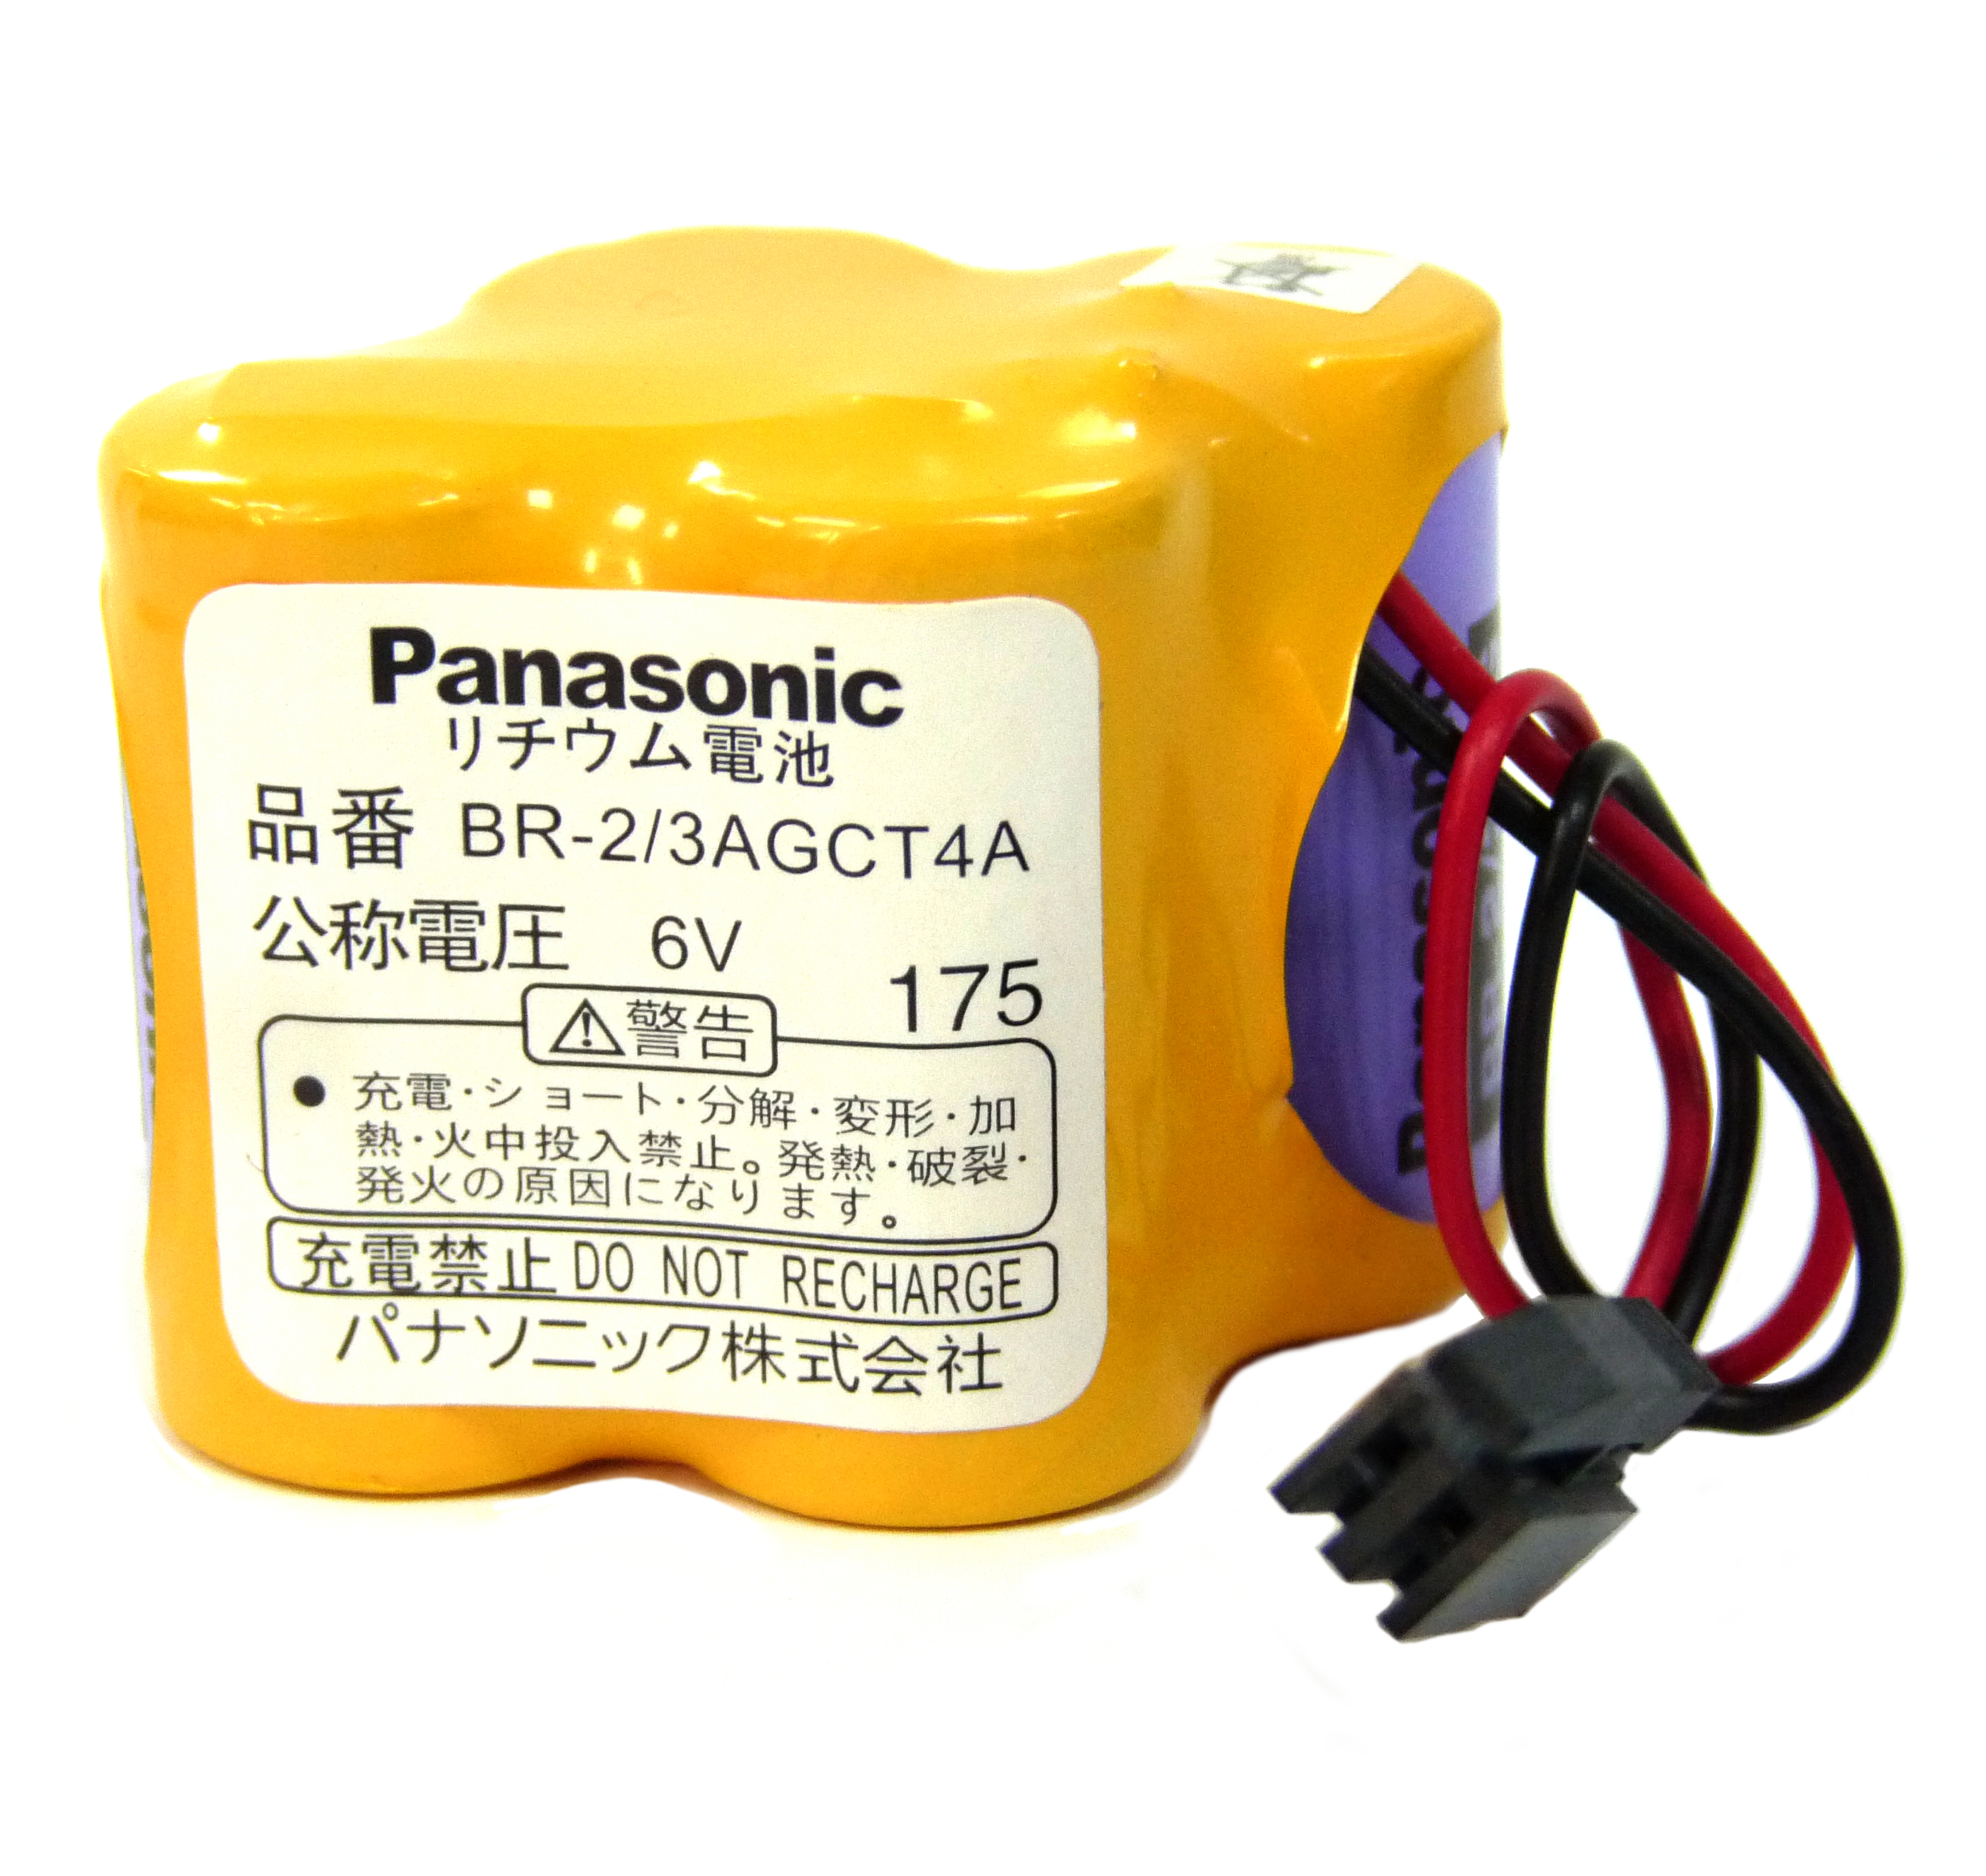 Panasonic Sealed Lead Acid Battery Ups Cr123a Cr2 Wiring Devices Philippines Br2 3agct4a 175